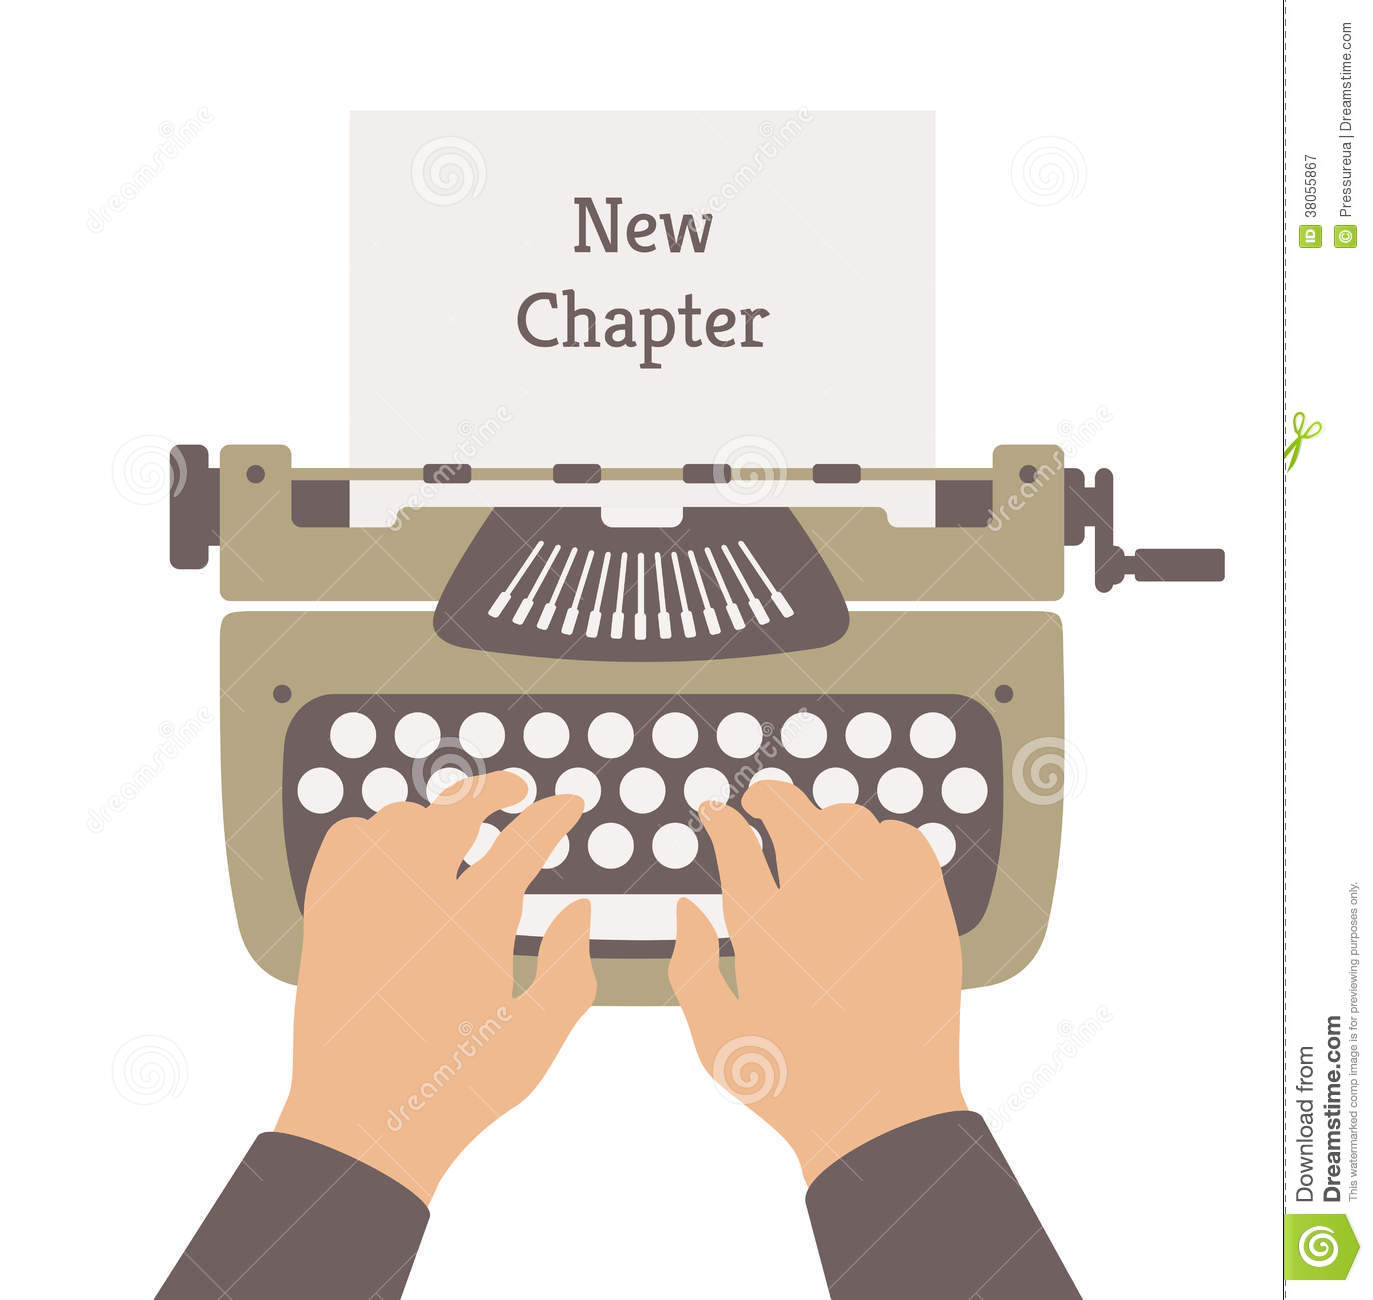 illustration concept of author writing a new chapter in a novel story rsU2eHTq